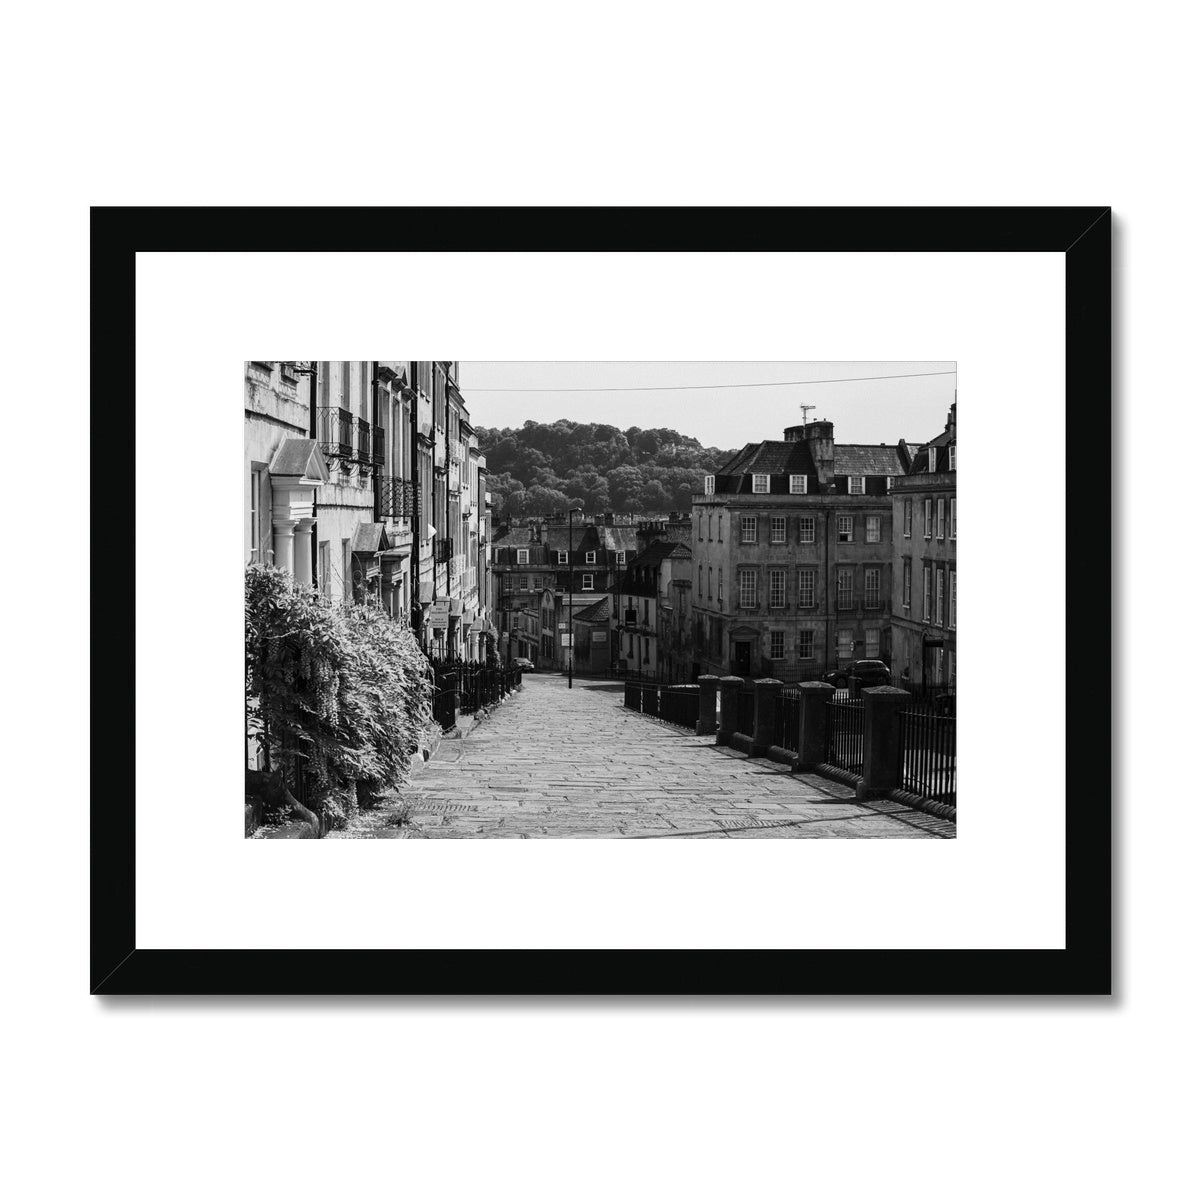 Bath Under Covid_5 Framed & Mounted Print